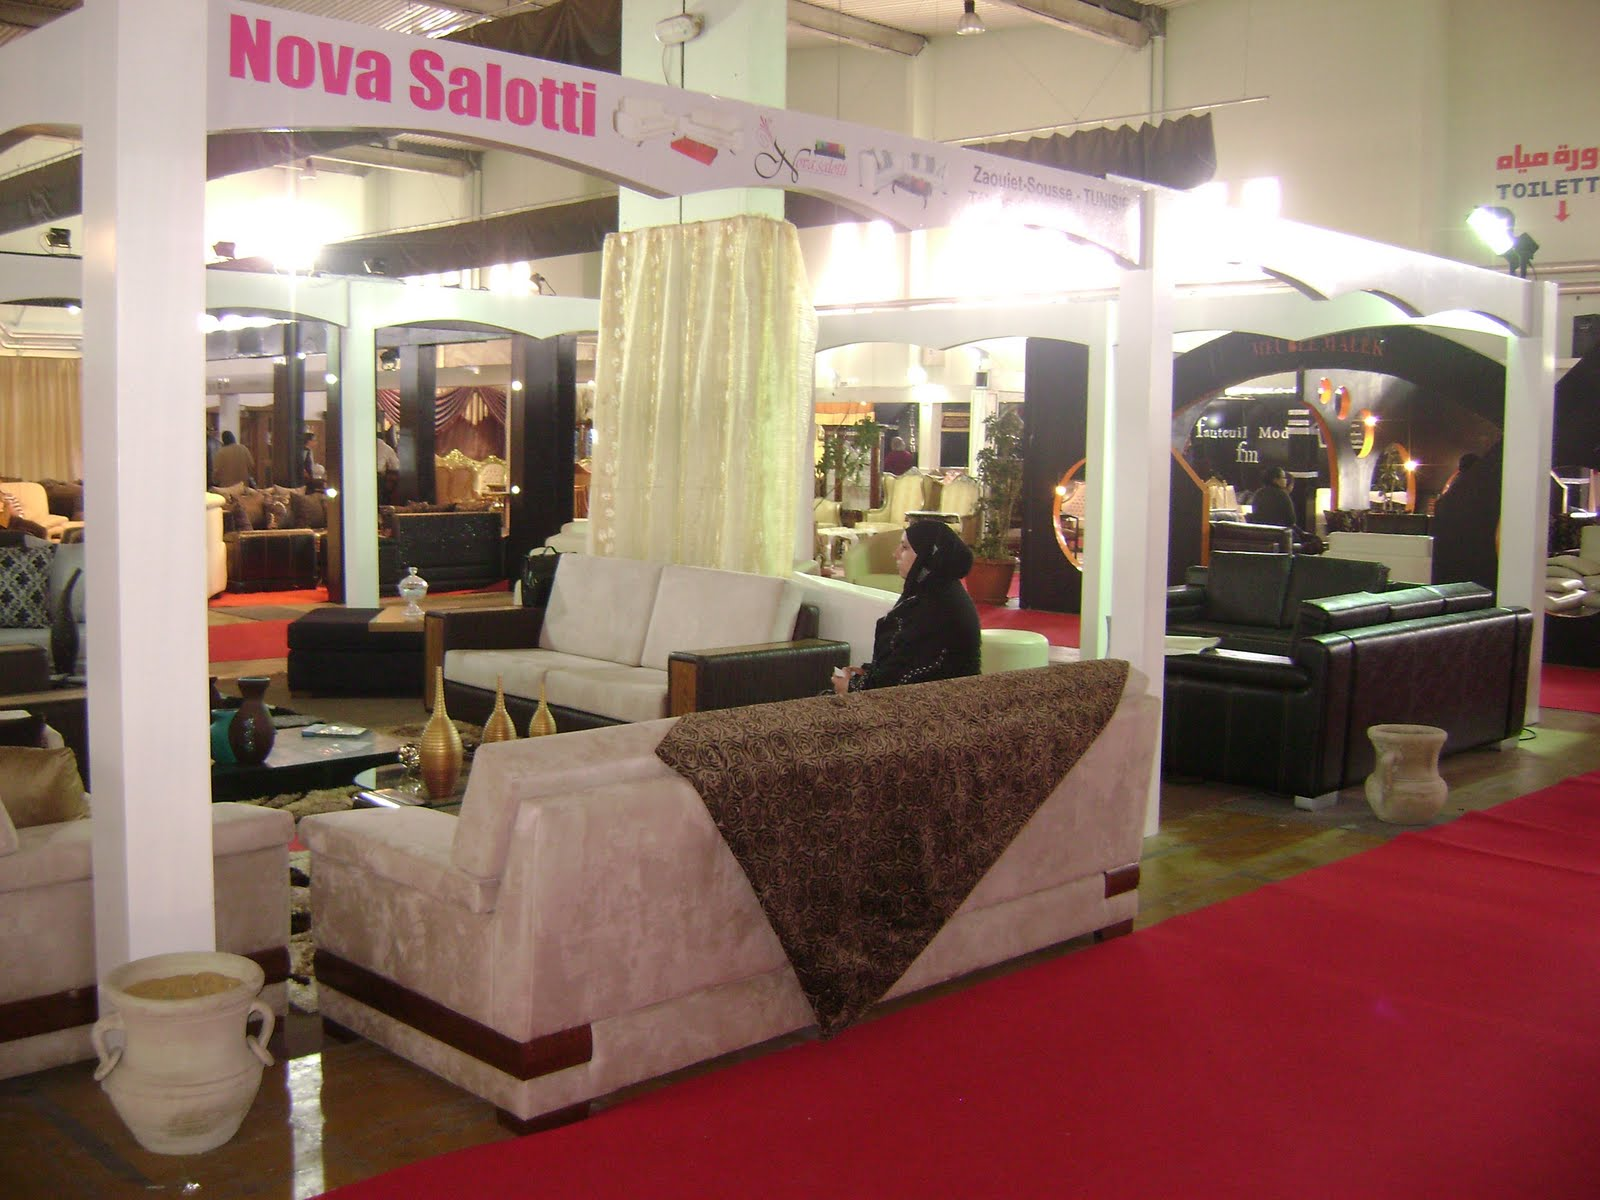 foire internationale de sousse salon du meuble athethy 2011 nova salotti. Black Bedroom Furniture Sets. Home Design Ideas